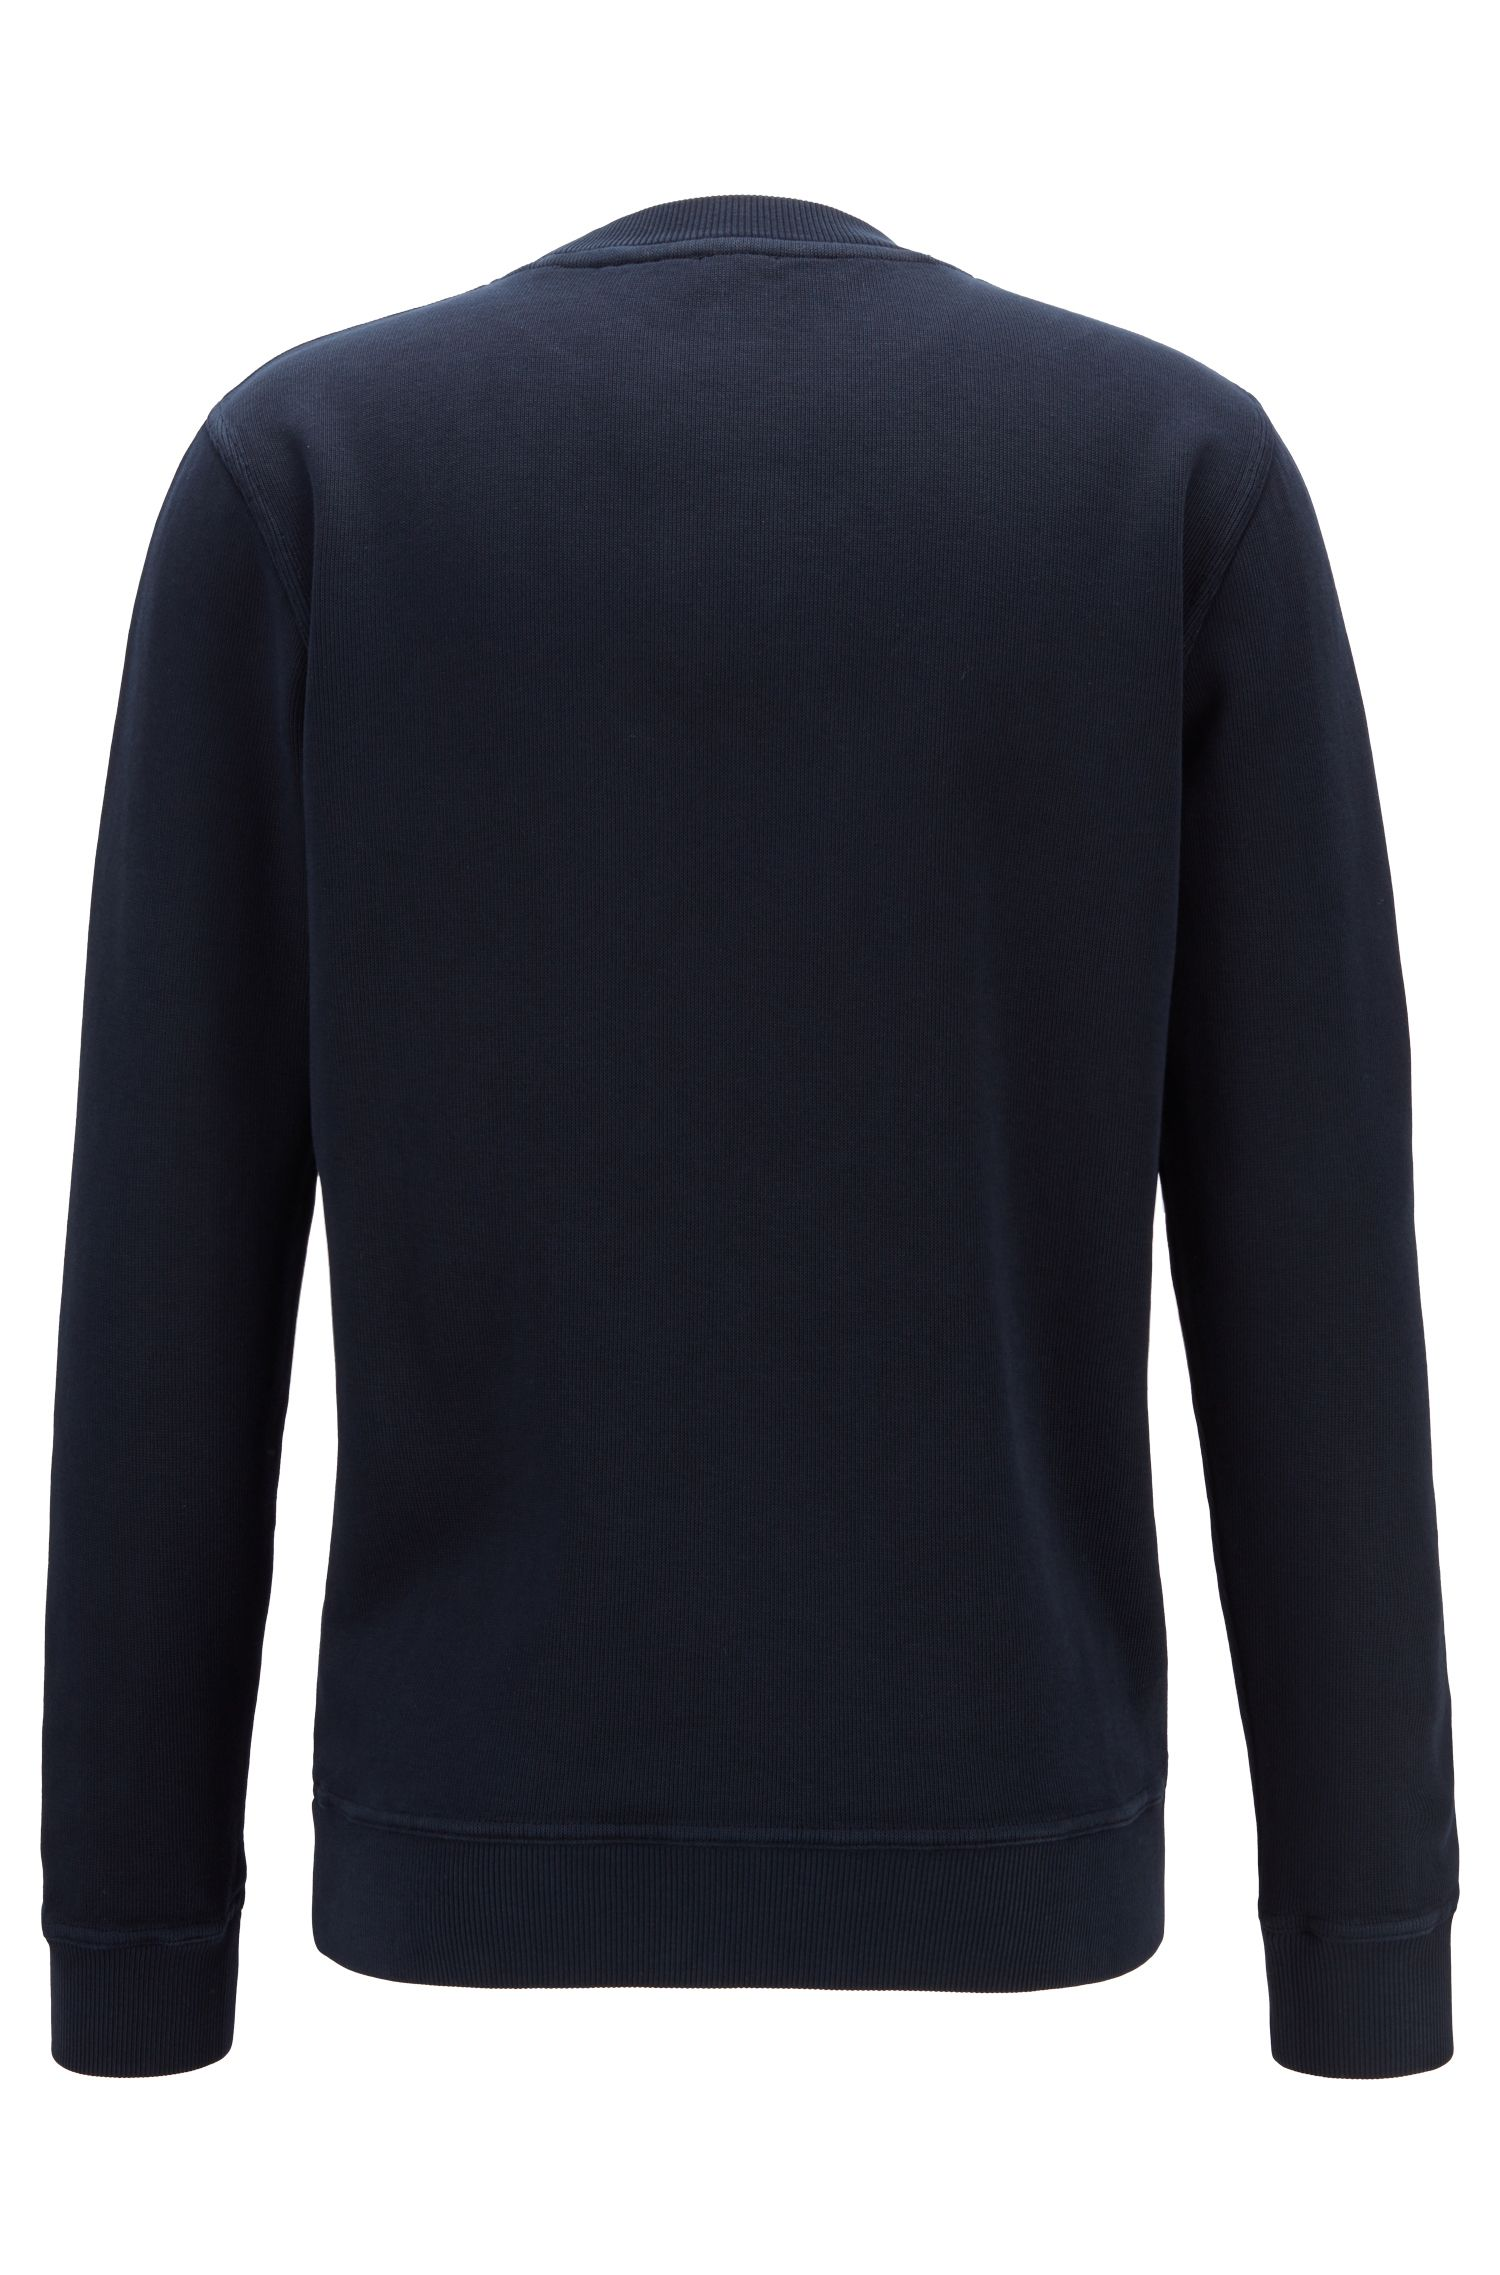 Relaxed-fit French-rib sweatshirt with transparent logo, Azul oscuro